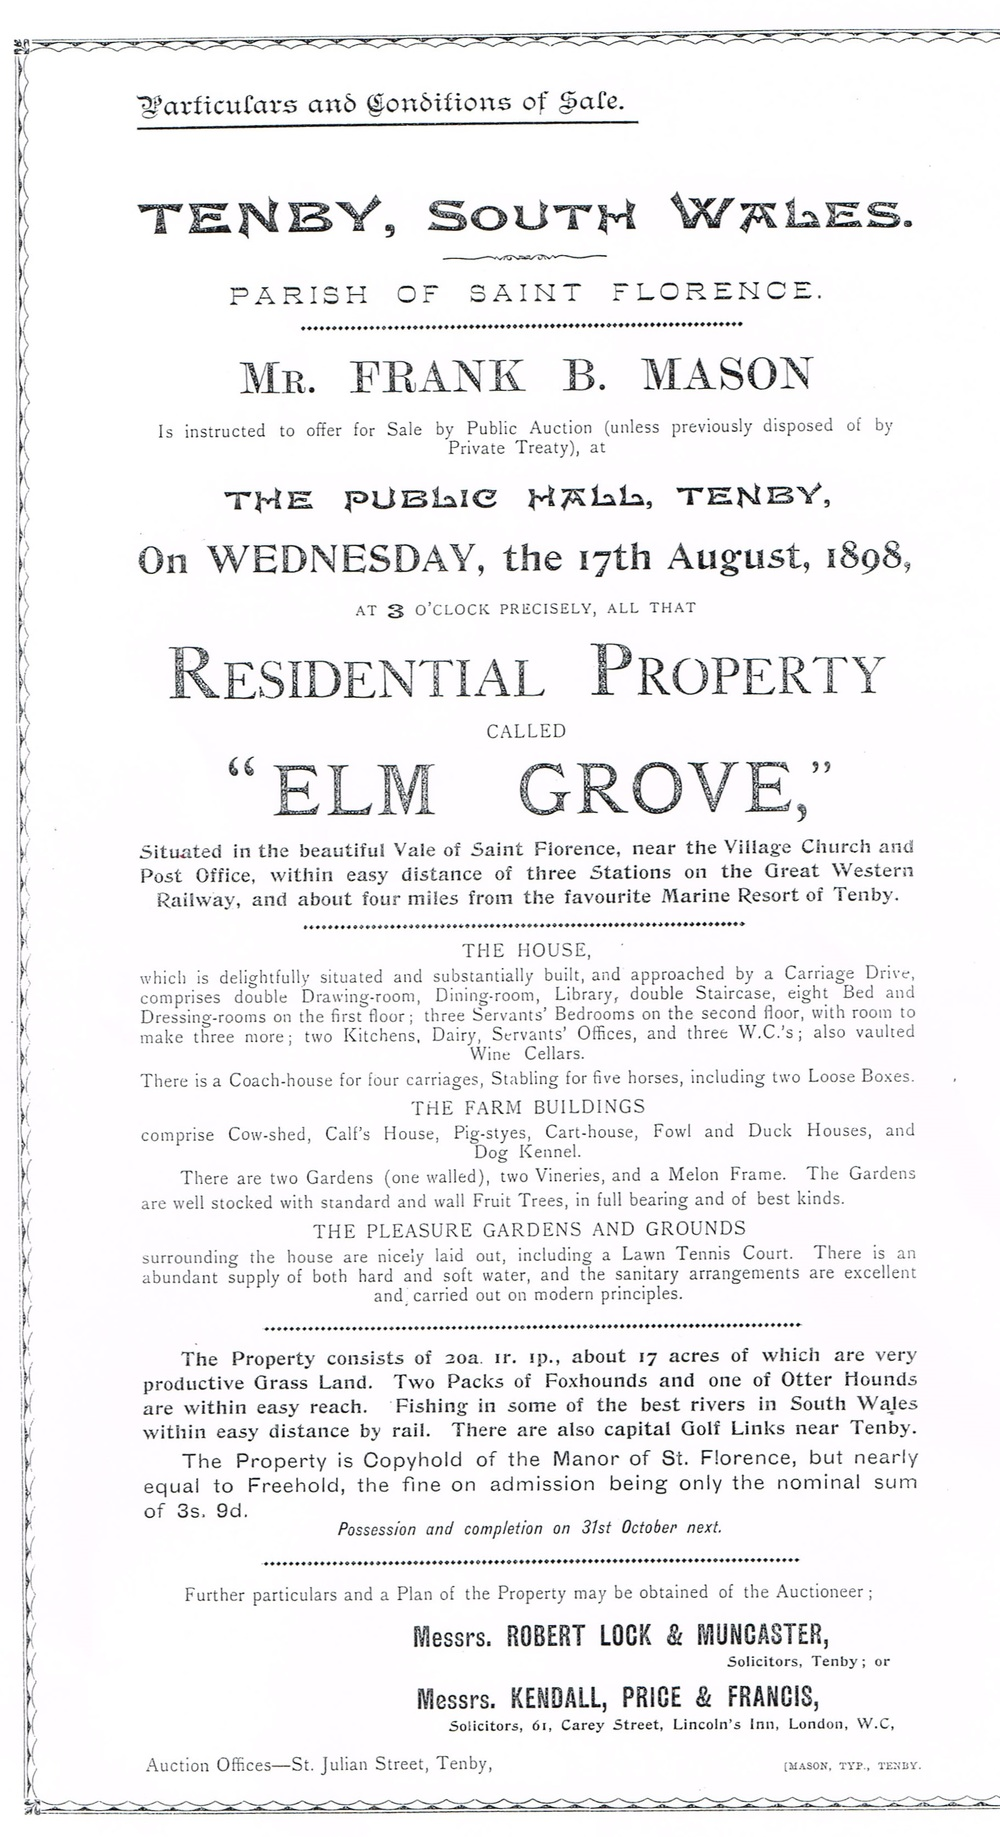 elm grove auction 2.jpg